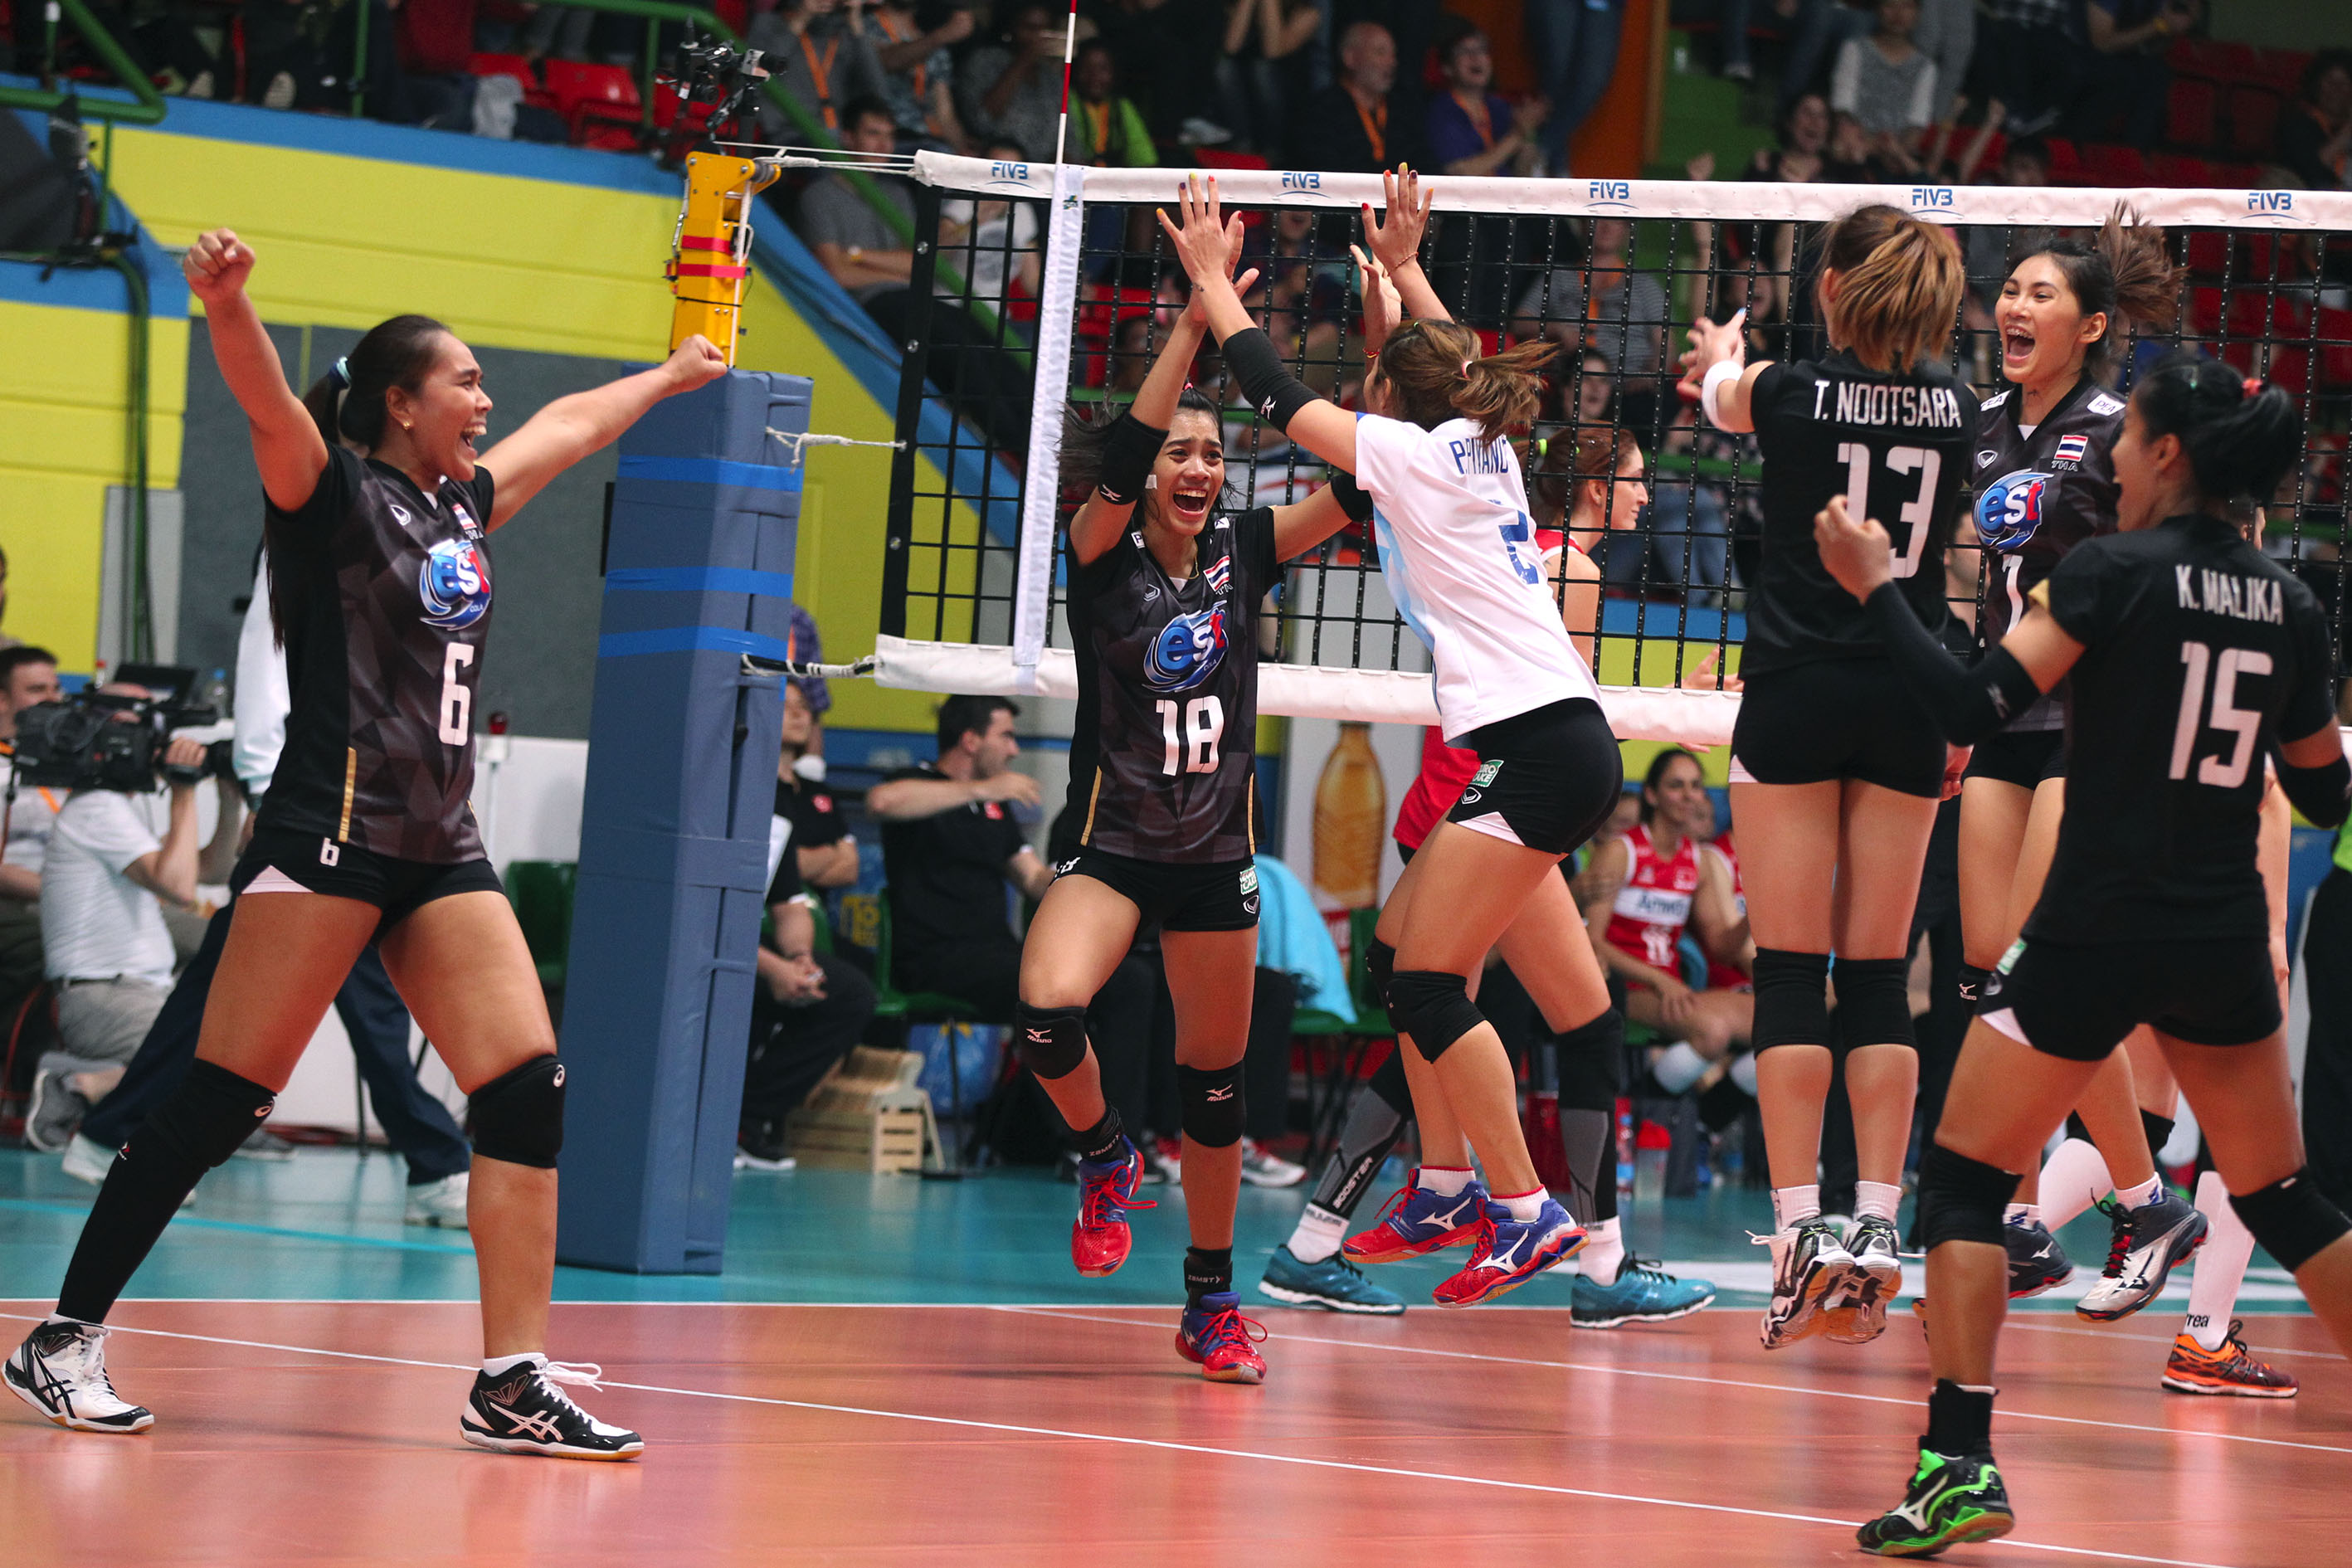 THAILAND JUMP FOR JOY FOLLOWING THEIR INCREDIBLE WIN OVER TURKEY.